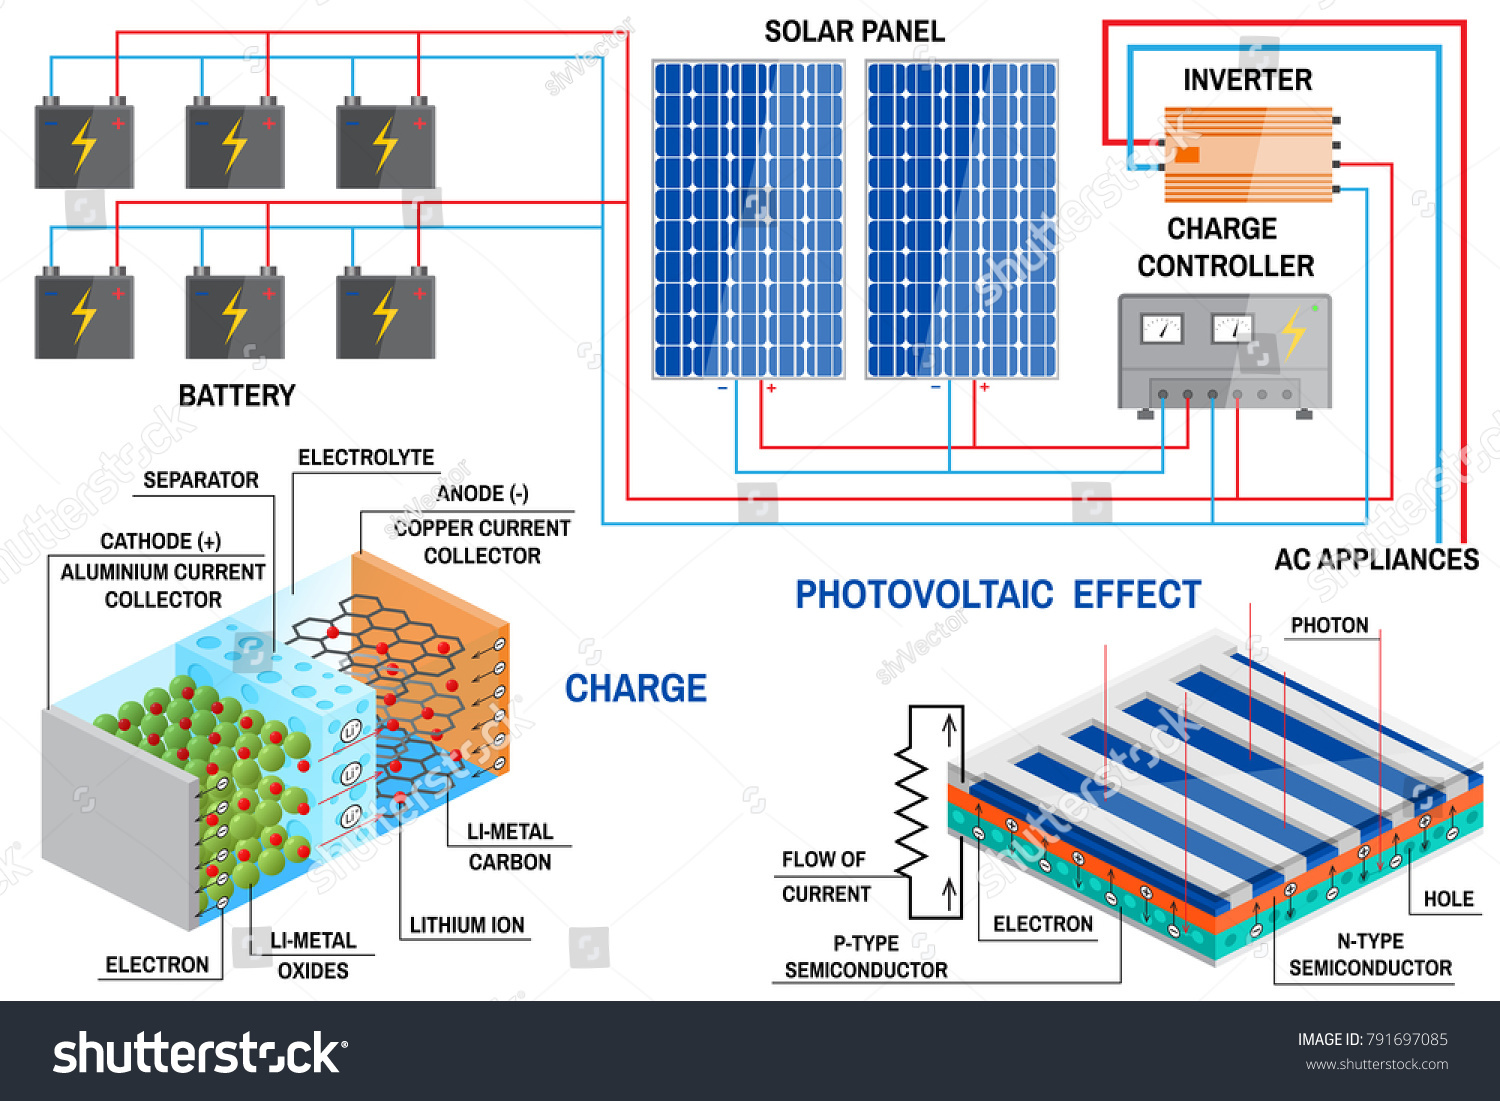 Solar Panel Liion Battery Generation System Stock Illustration Diagram And Li Ion For Home Renewable Energy Concept